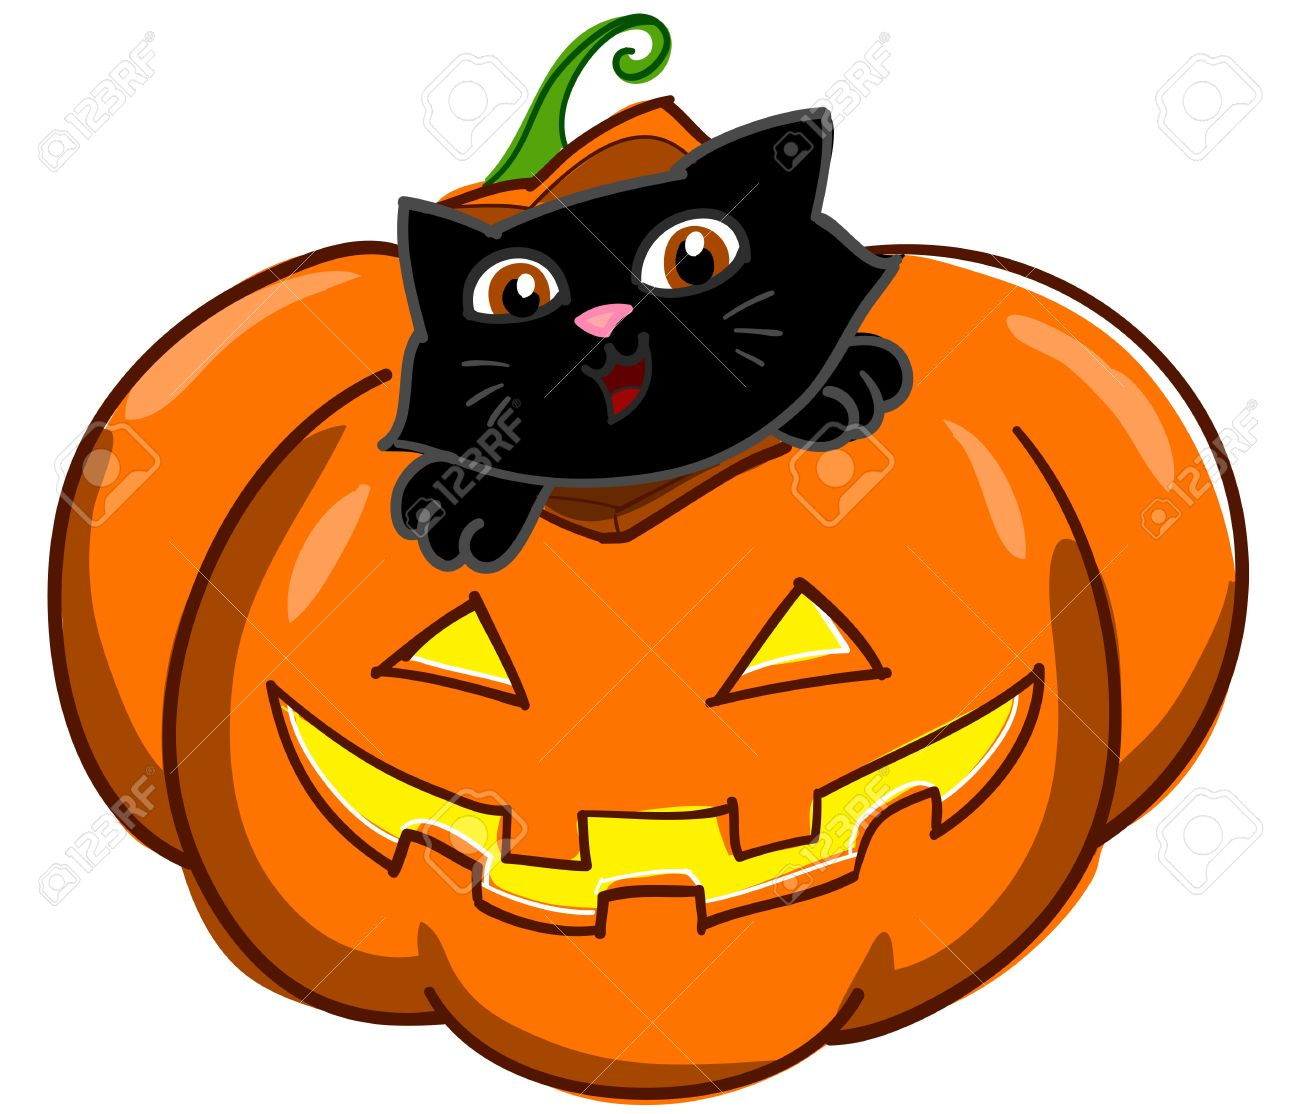 Lovely Halloween Pumpkin With Cute Cartoon Black Cat Digital Illustration Stock  Illustration   13482892